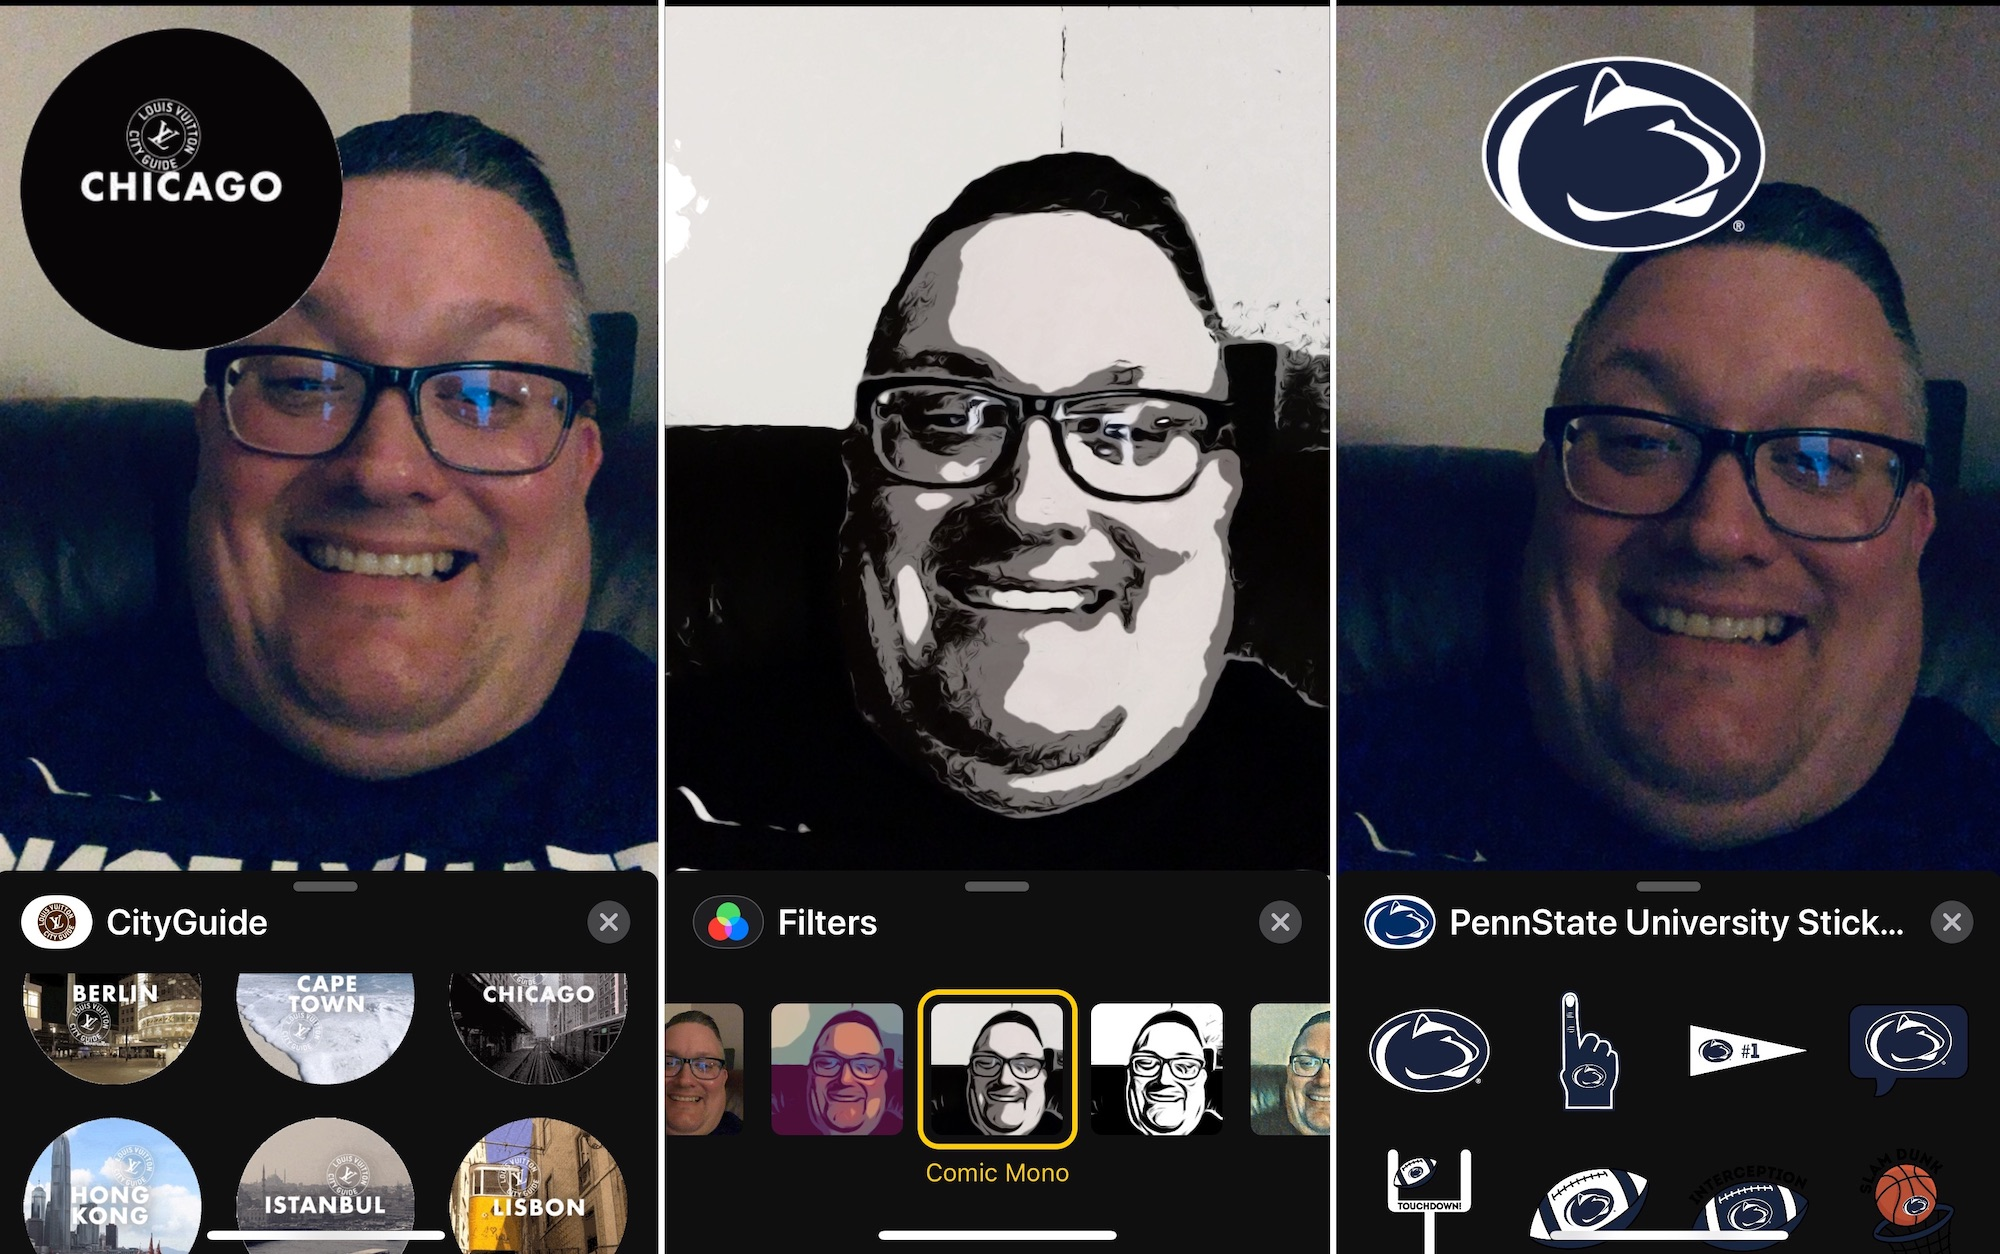 How to Use FaceTime Camera Effects like Animoji and Stickers During Video Calls?